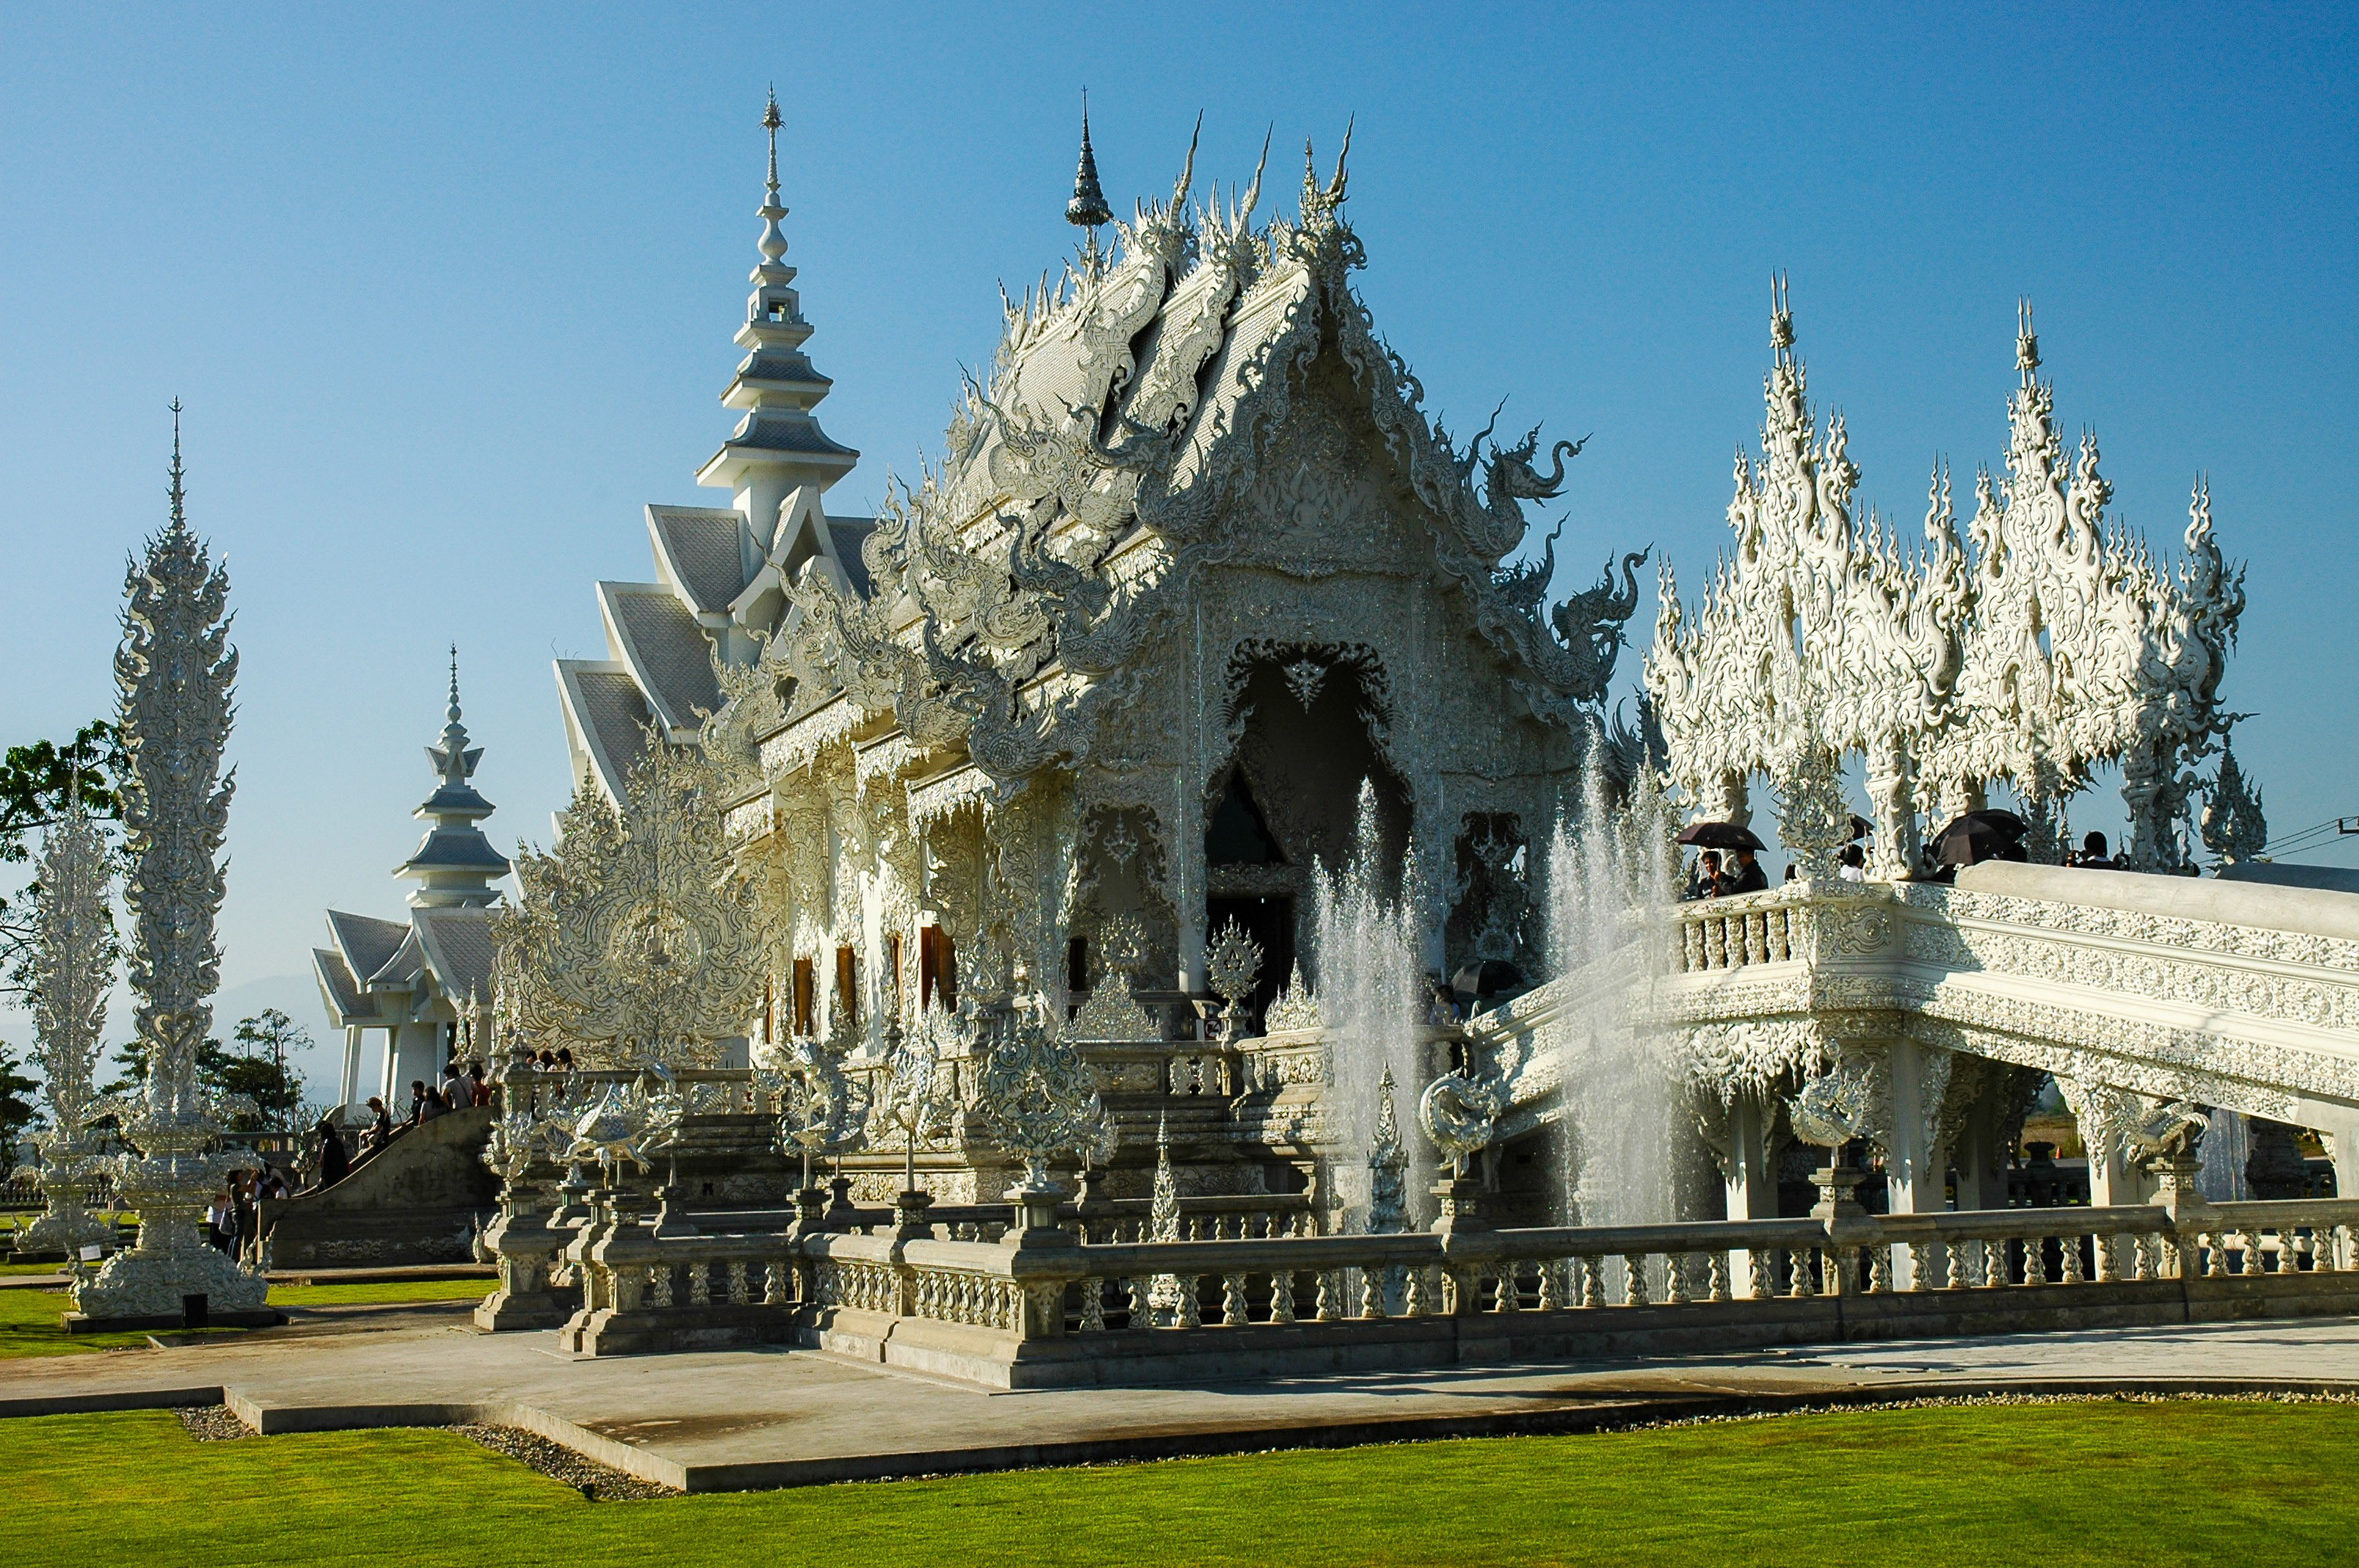 Festival Of Speed >> Temple in Bangkok, Thailand image - Free stock photo ...